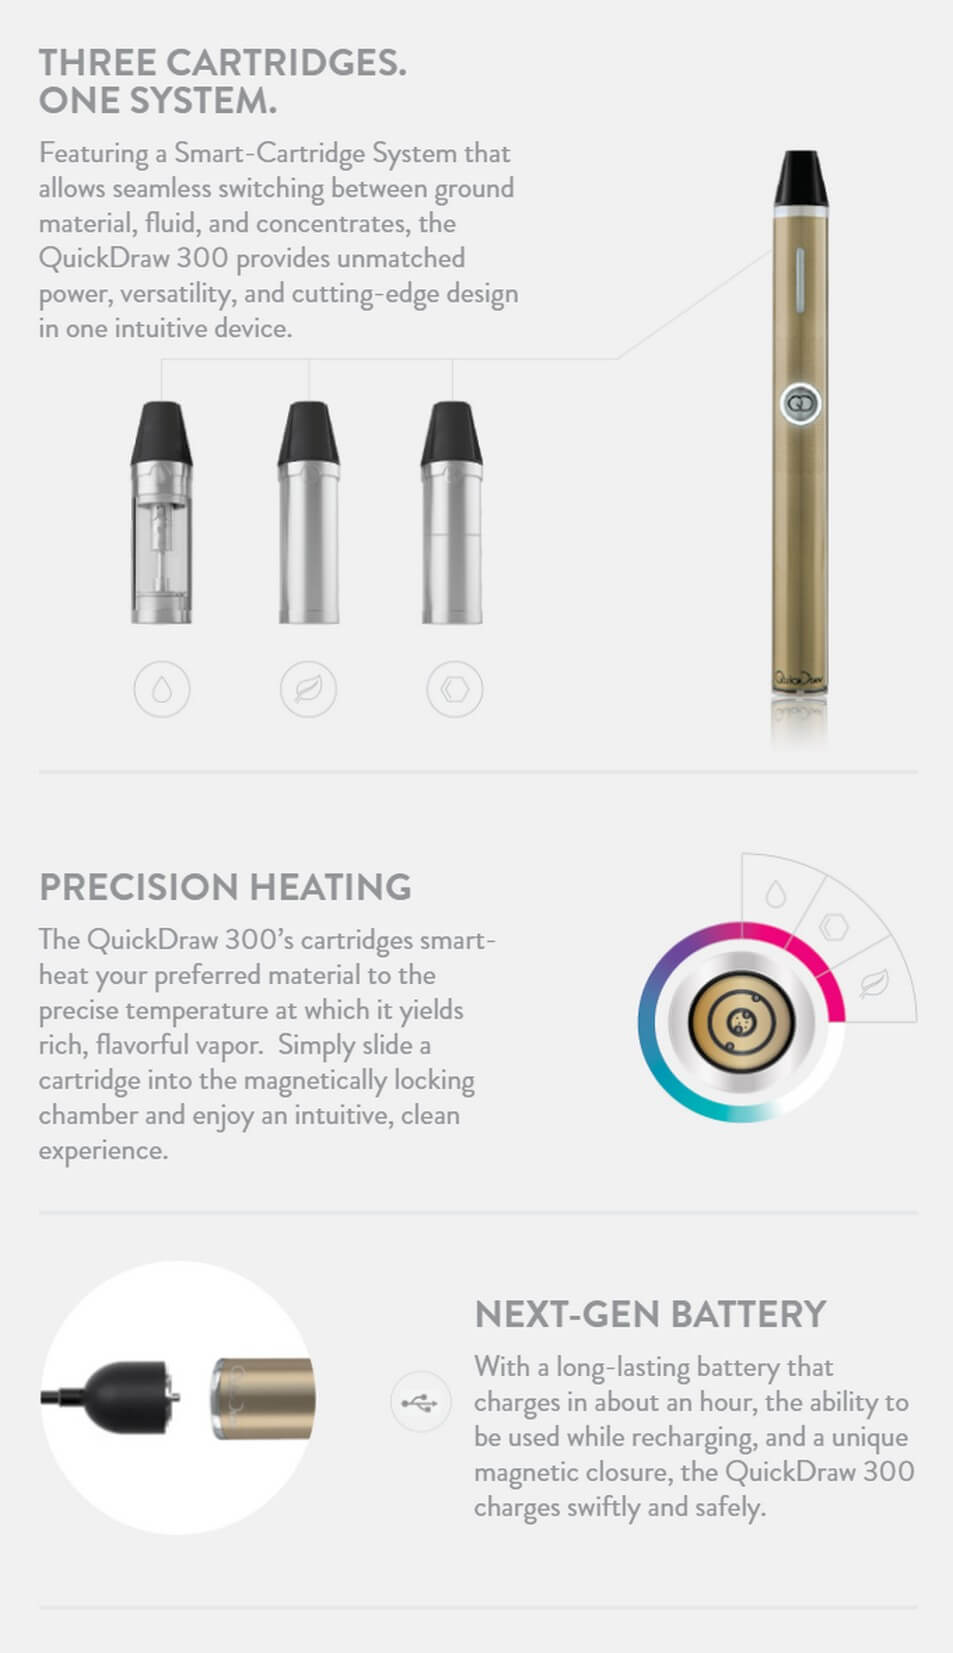 QuickDraw 300 Features - info-graphics